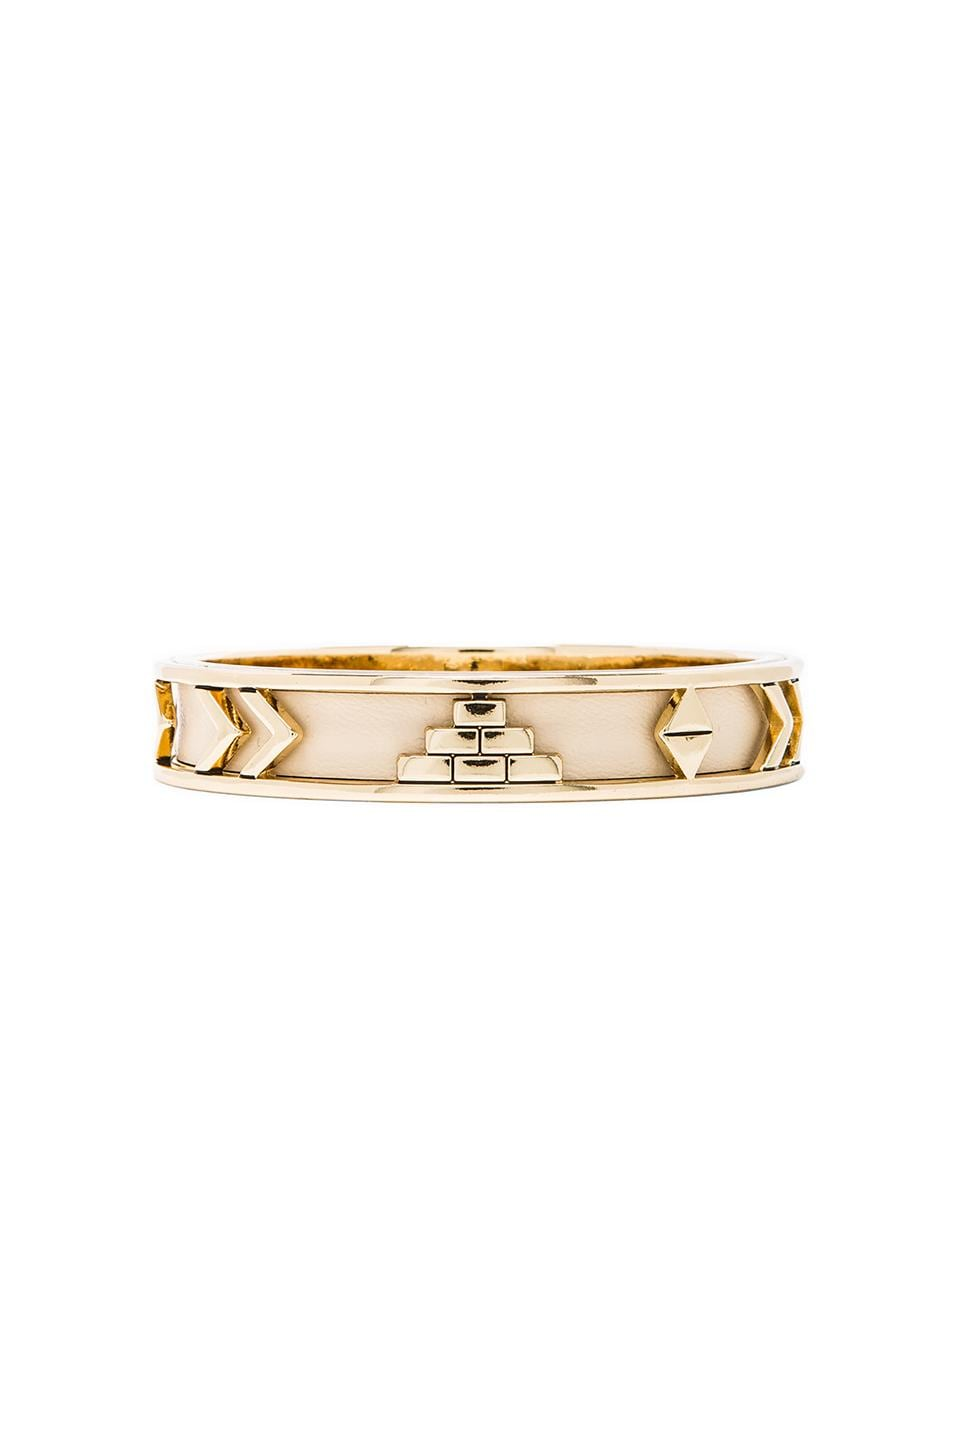 House of Harlow Aztec Bangle in Gold Tone Cream